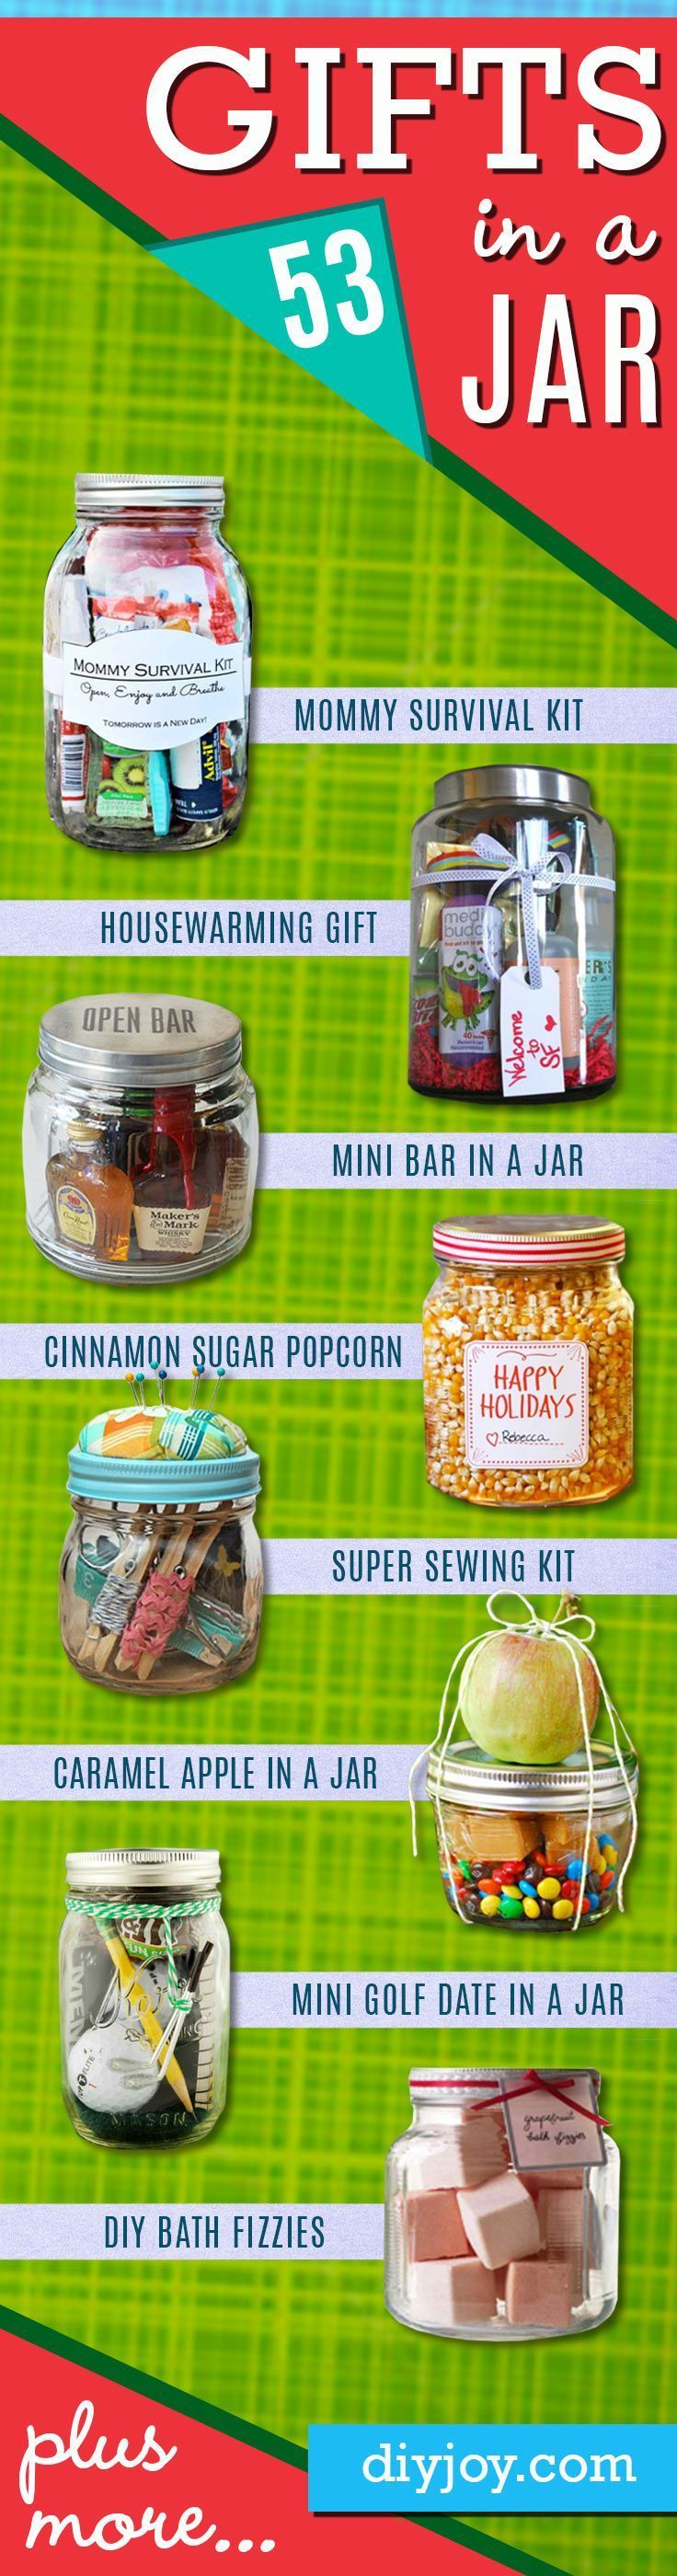 Best Mason Jar Gifts | Cheap DIY Gifts for Women | Easy Crafts for Teens to Make | Fun Gift Ideas for Men, Women, Teens, Kids, Teacher, Mom. Christmas, Holiday, Birthday and Easy Last Minute Gifts http://diyjoy.com/diy-gifts-in-a-jar